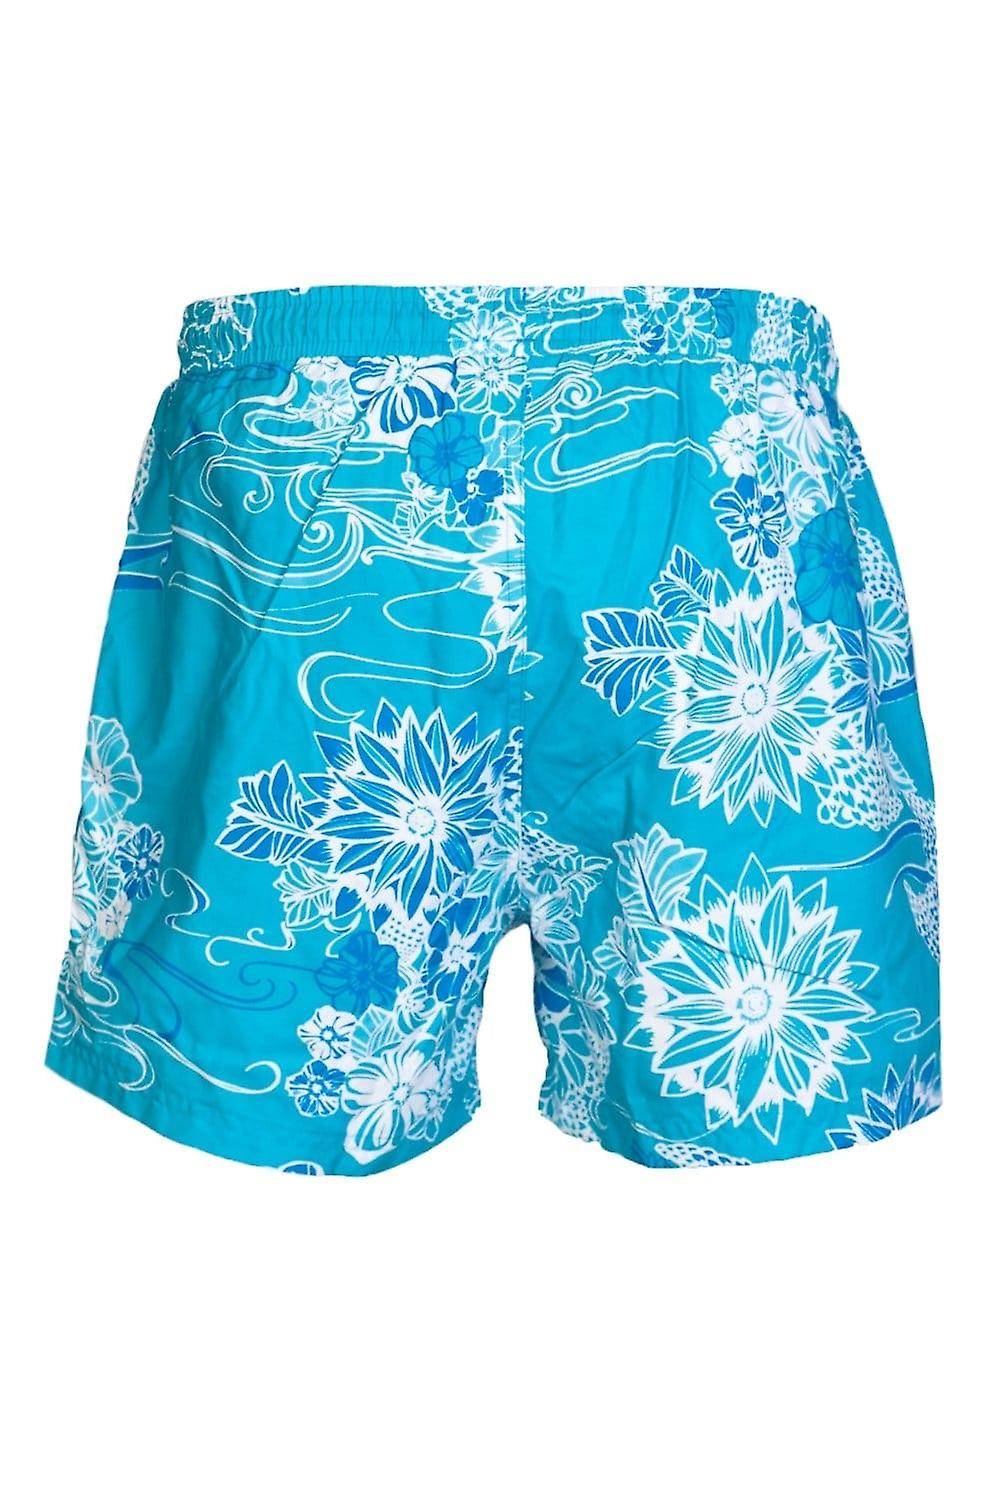 BOSS HUGO BOSS BLACK Flower Printed Swimming Shorts In Red And Blue PIRANAH 50260996